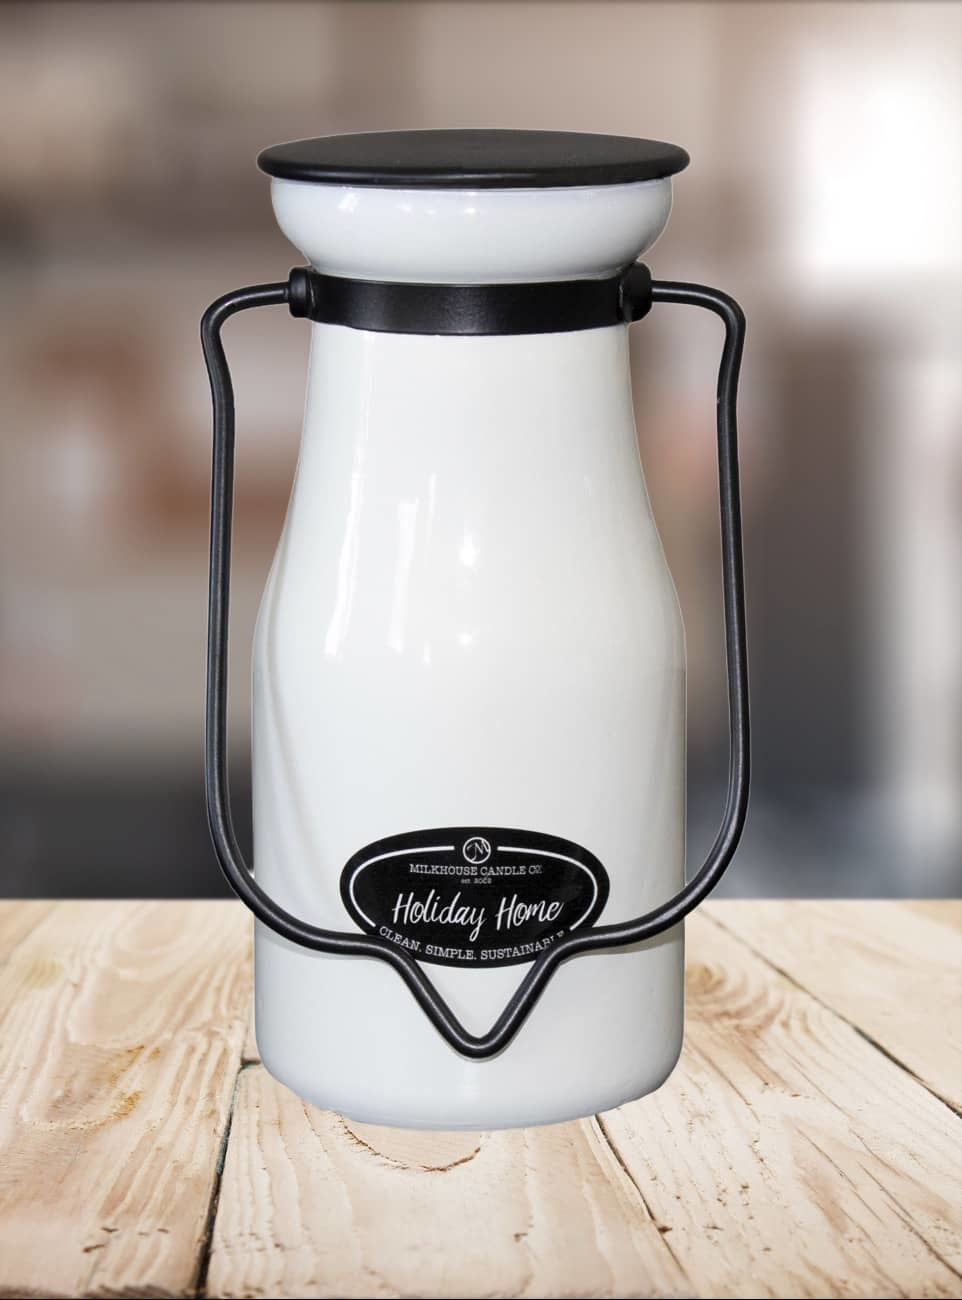 Milkhouse Candles Milkhouse Candle Holiday Home 8oz Milk Bottle